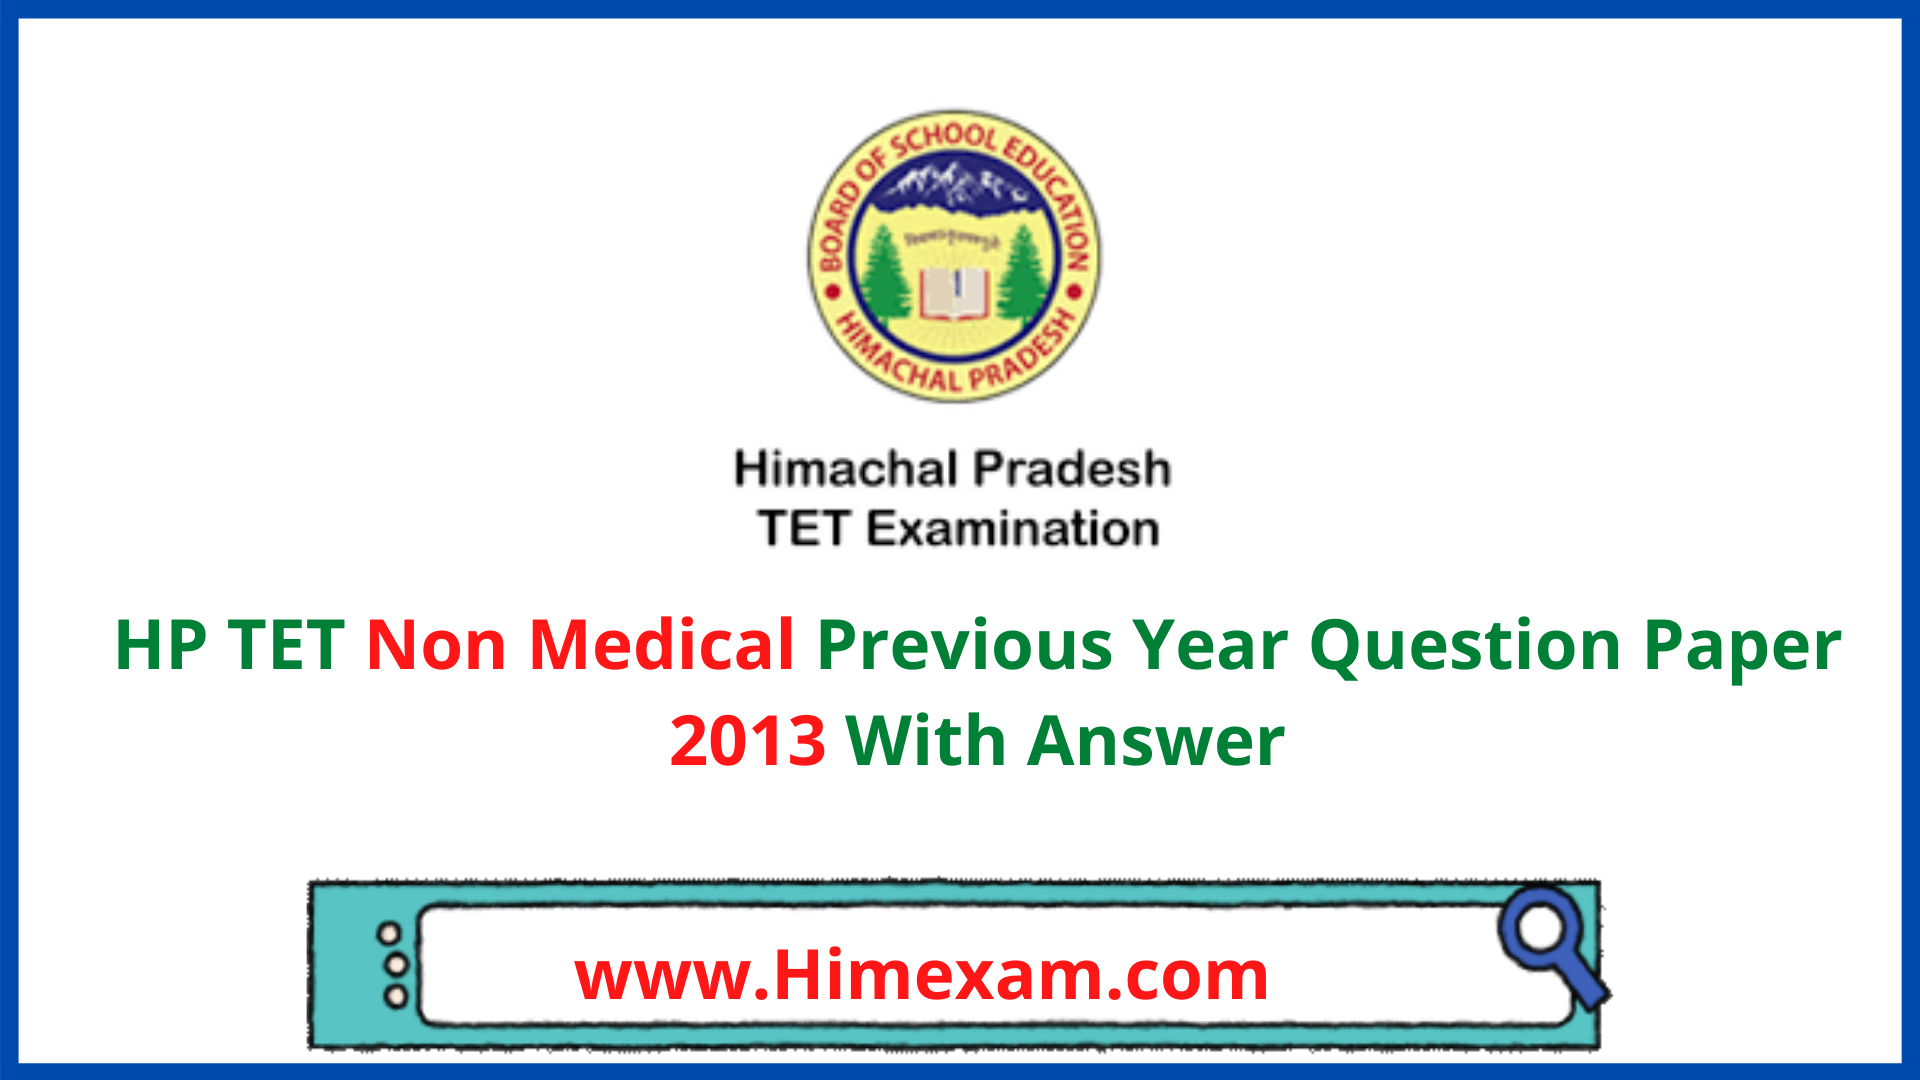 HP TET Non Medical Previous Year Question Paper 2013 With Answer